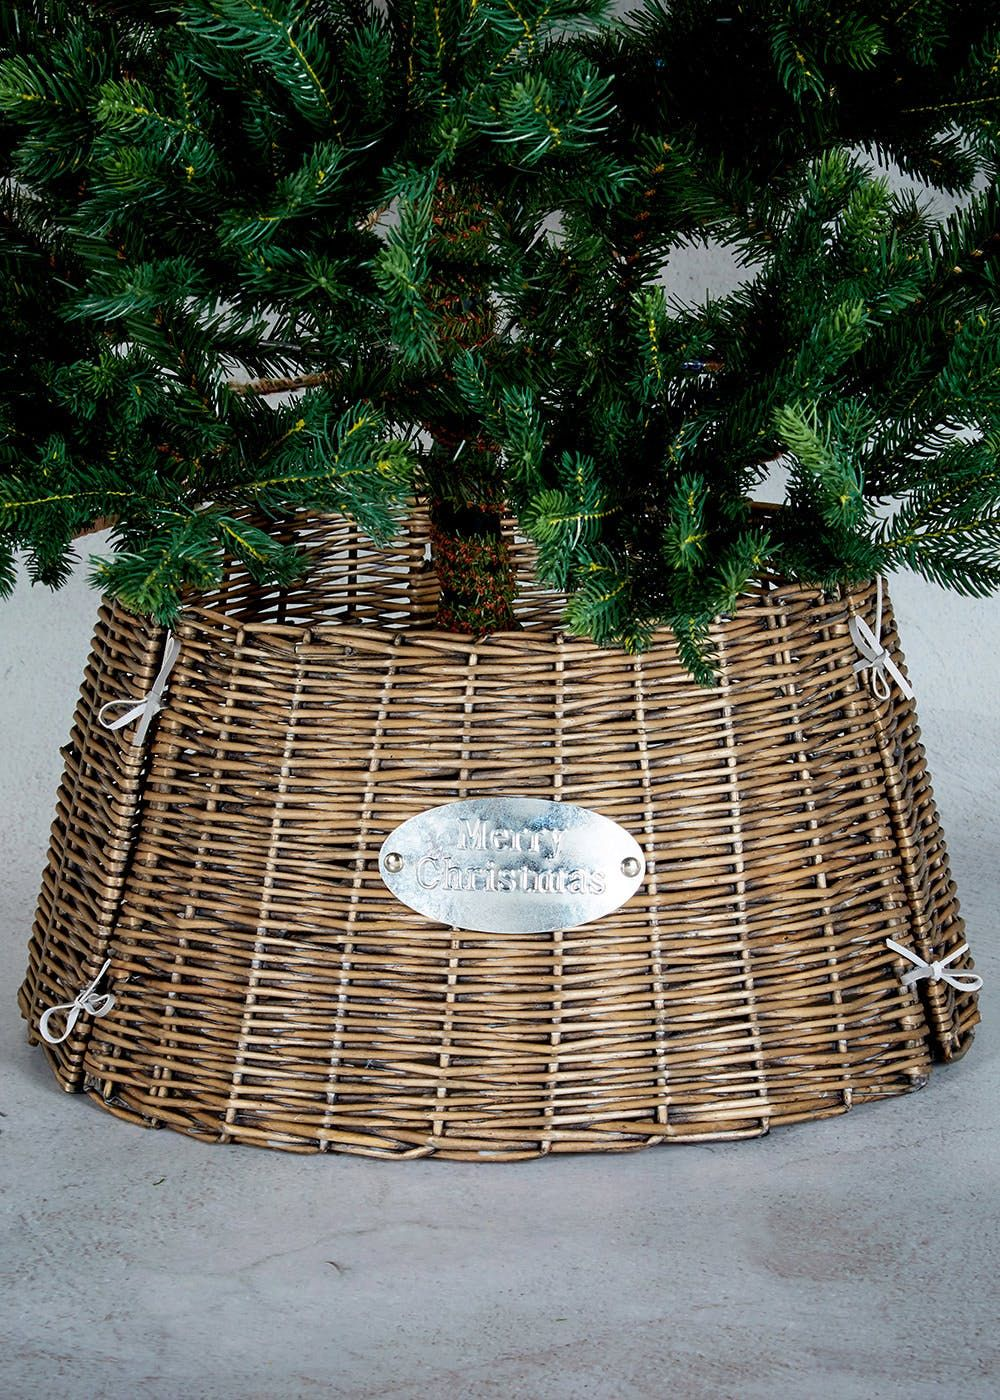 Wicker Festive Christmas Tree Skirt With Merry Slogan Perfect For Adding An Extra Touch To Your Dimensions 48cm X 26cm